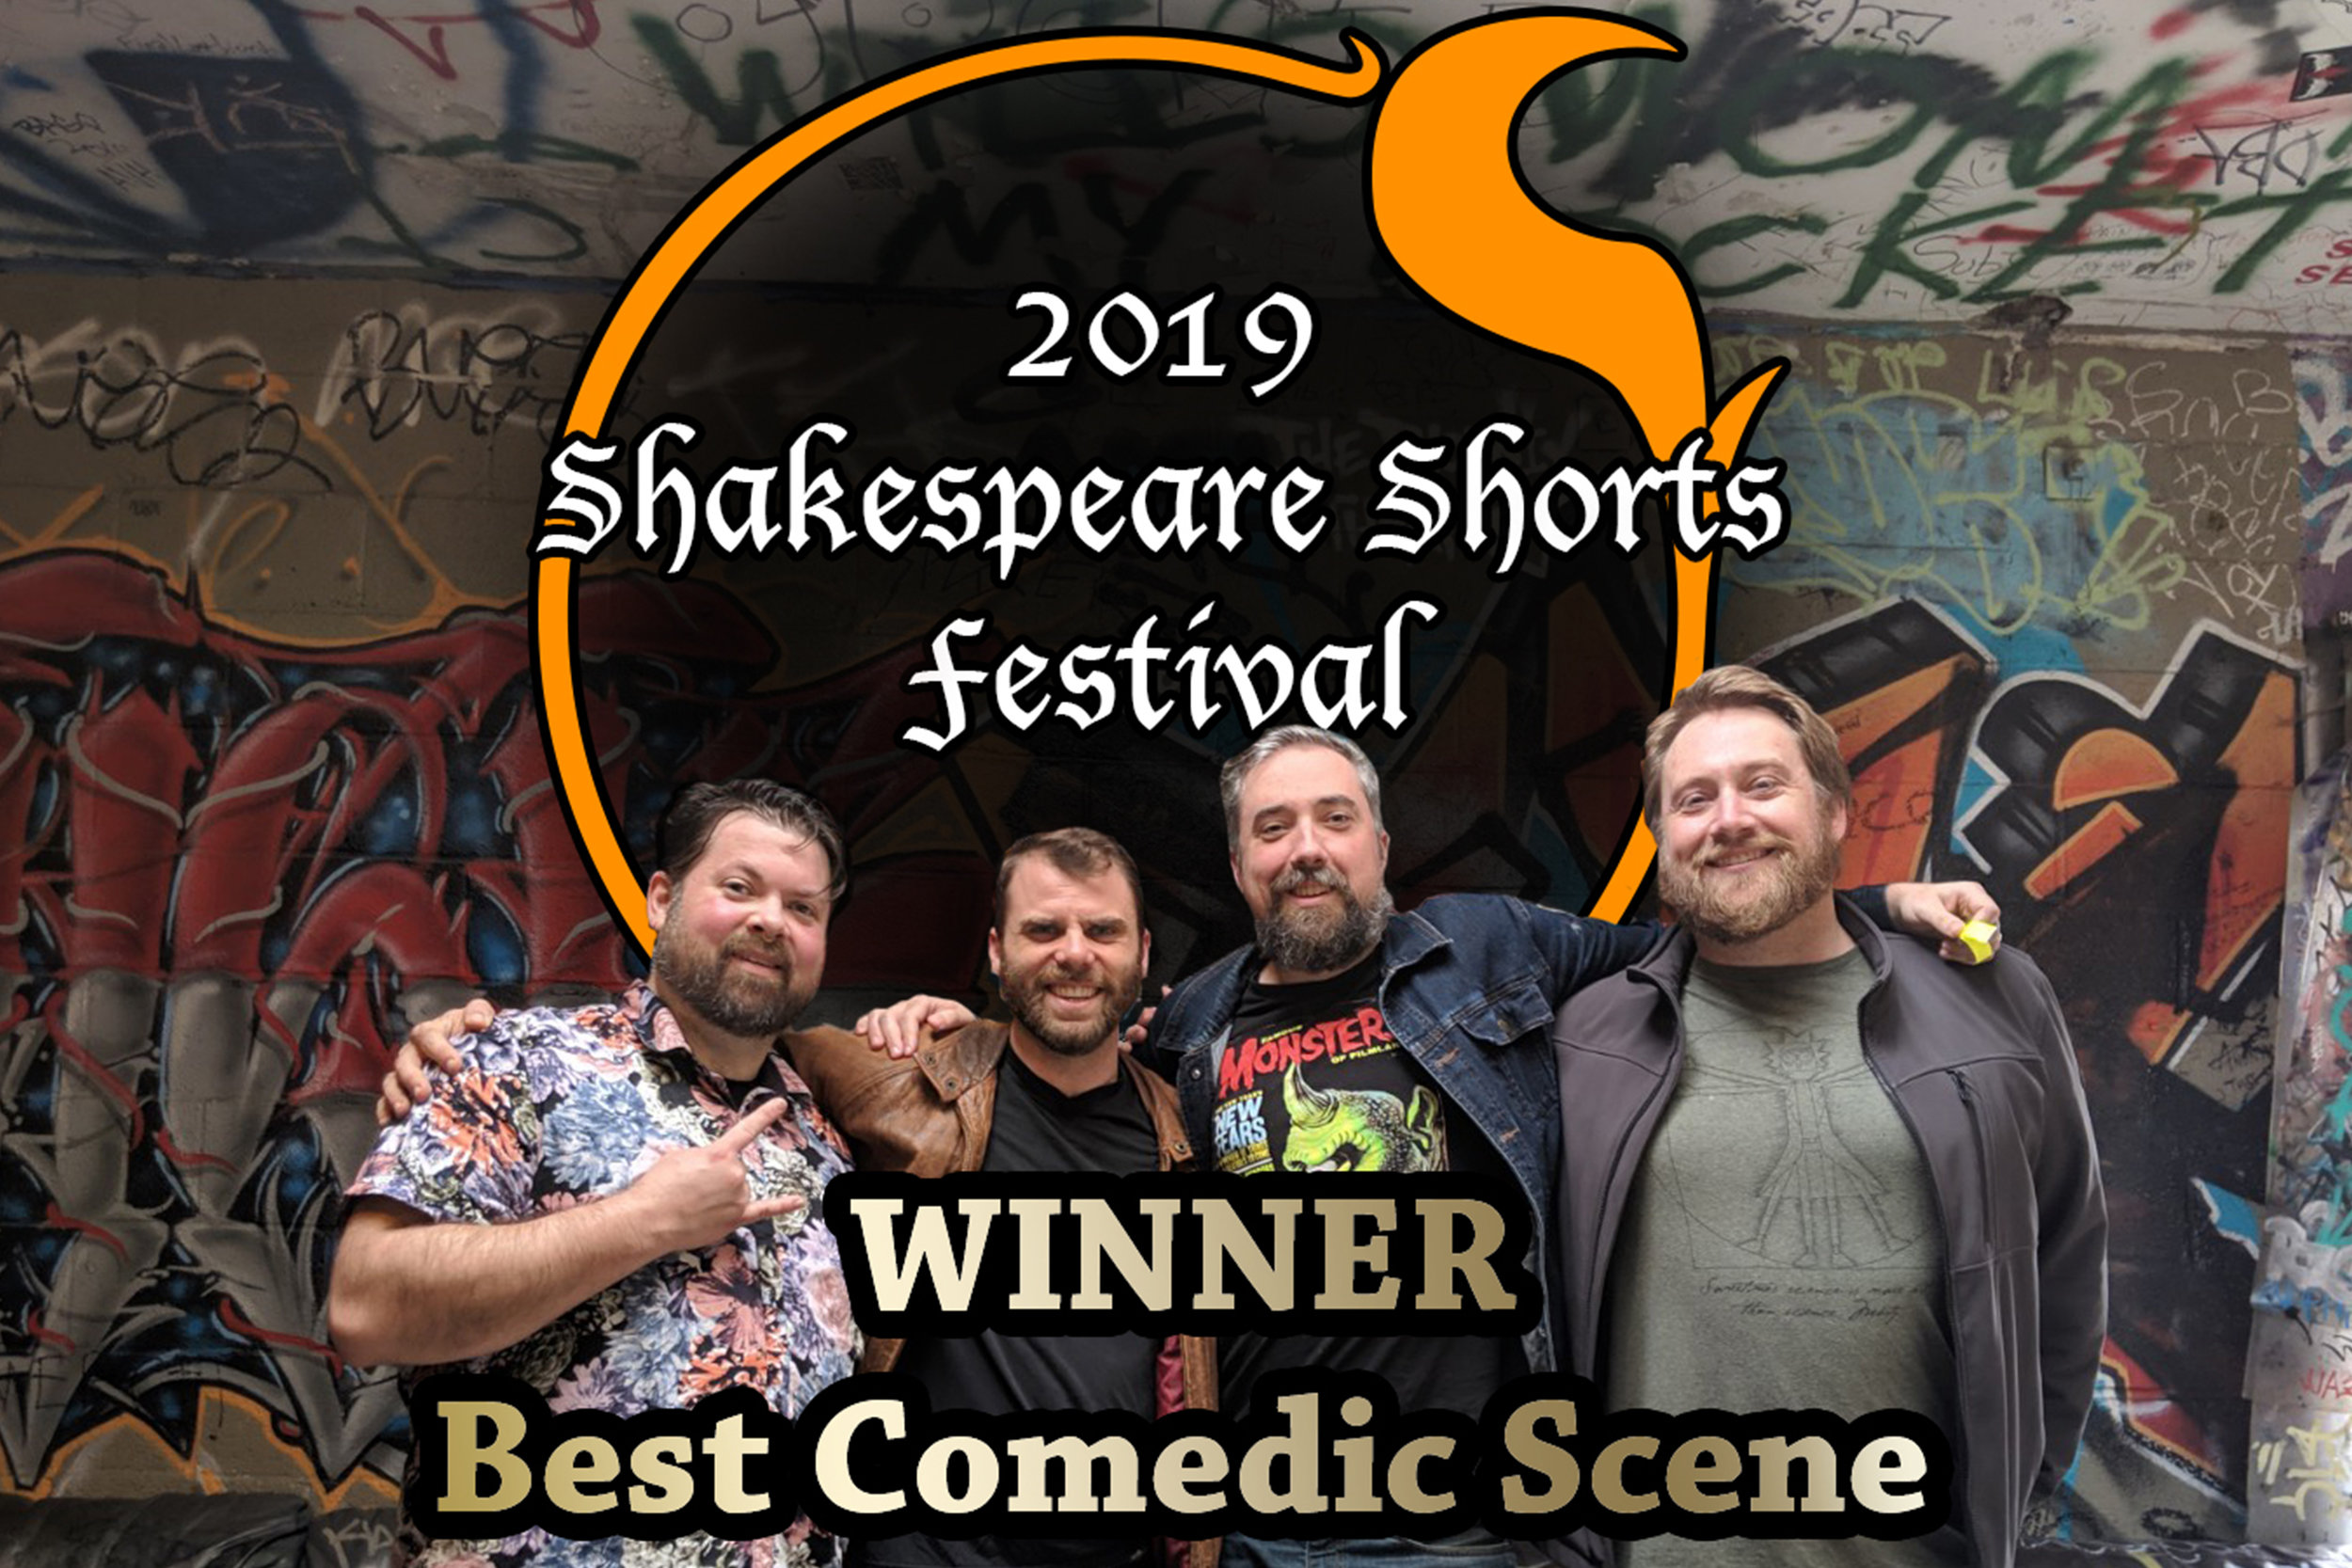 Fire Circle Wins Best Comedic Scene! - Fire Circle Theater takes home Best Comedic Scene at the 2019 Shakespeare Shorts Festival hosted by Petaluma Shakespeare Company! Check out some of the images from that day!